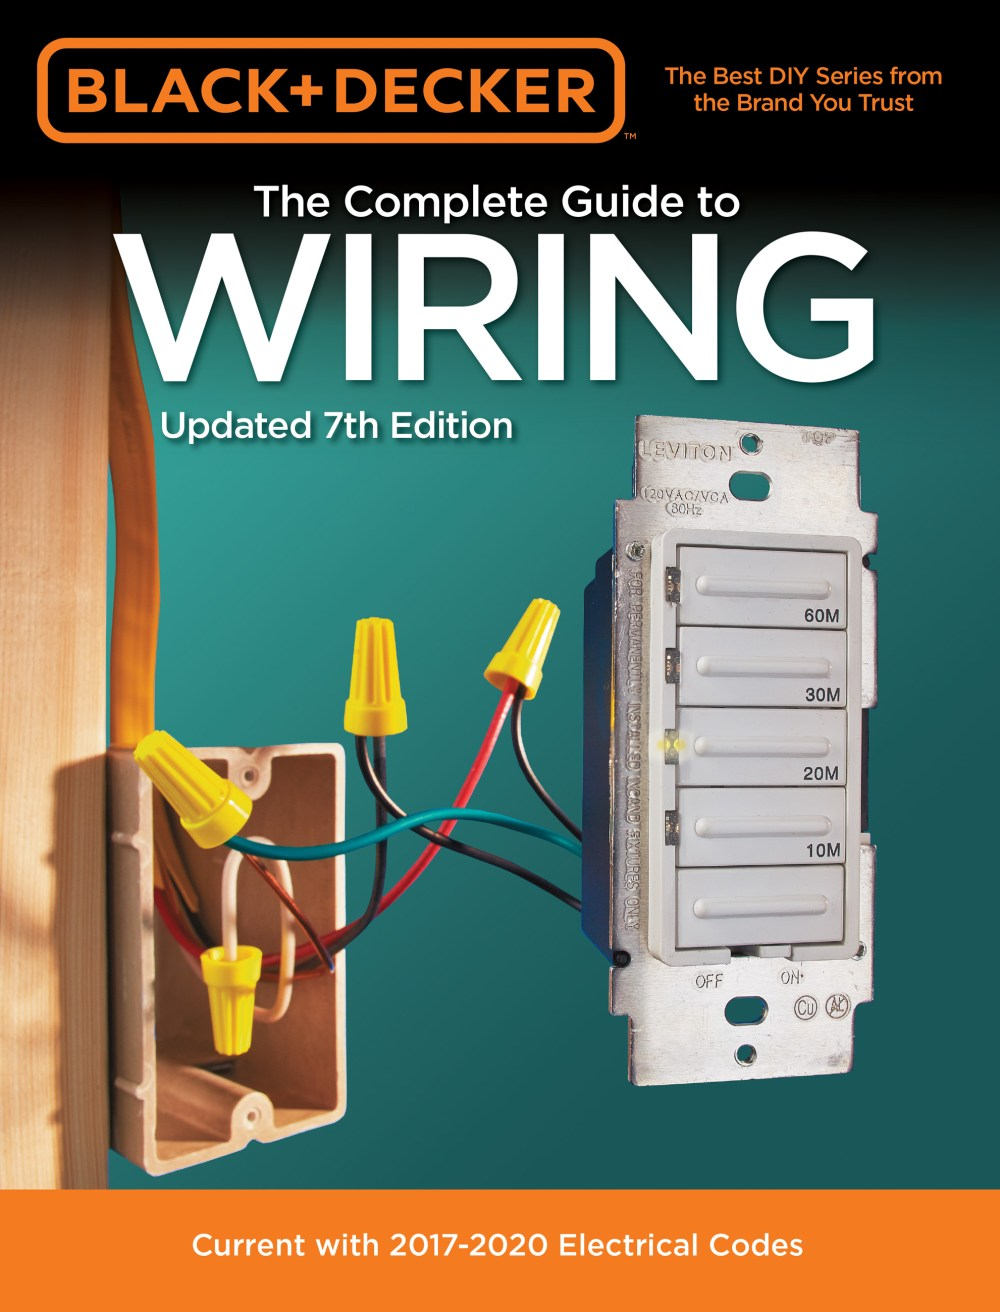 medium resolution of black decker the complete guide to wiring updated 7th edition current with 2017 2020 electrical codes walmart com